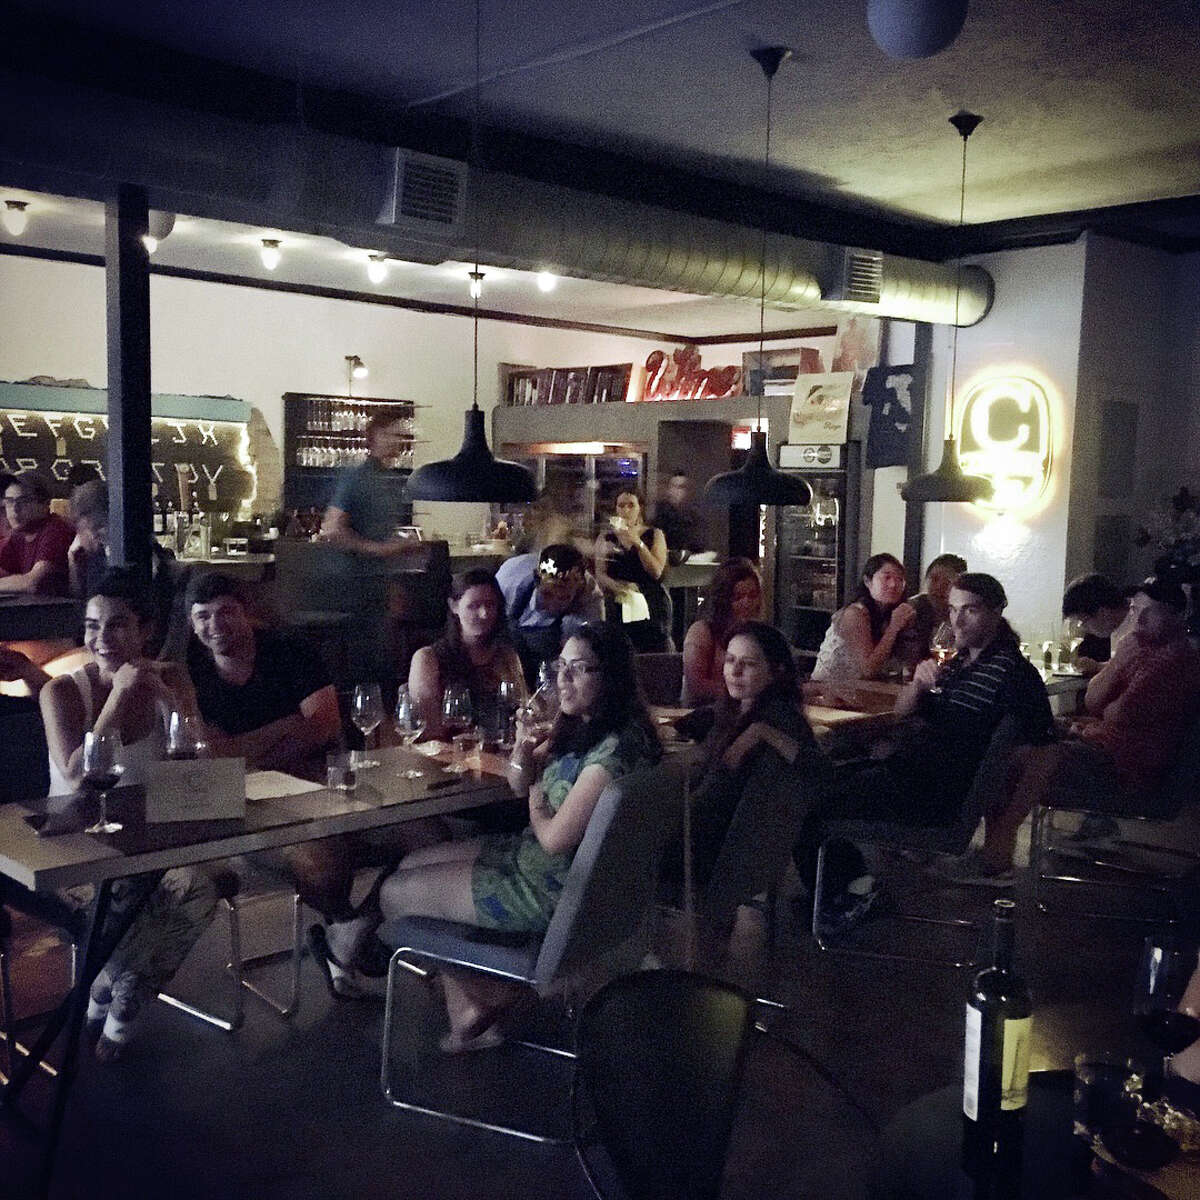 """Camerata at Paulie's1830 Westheimer8 p.m. to 9:30 p.m.All hail the """"Game of Rhônes"""" party Camerata. The Montrose wine bar is serving up rustic red and bold white vinos from France's Rhône Valley while the premiere episode streams. Come dressed as your favorite character, although the bar's no shirt, no shoes, no service policy still applies."""